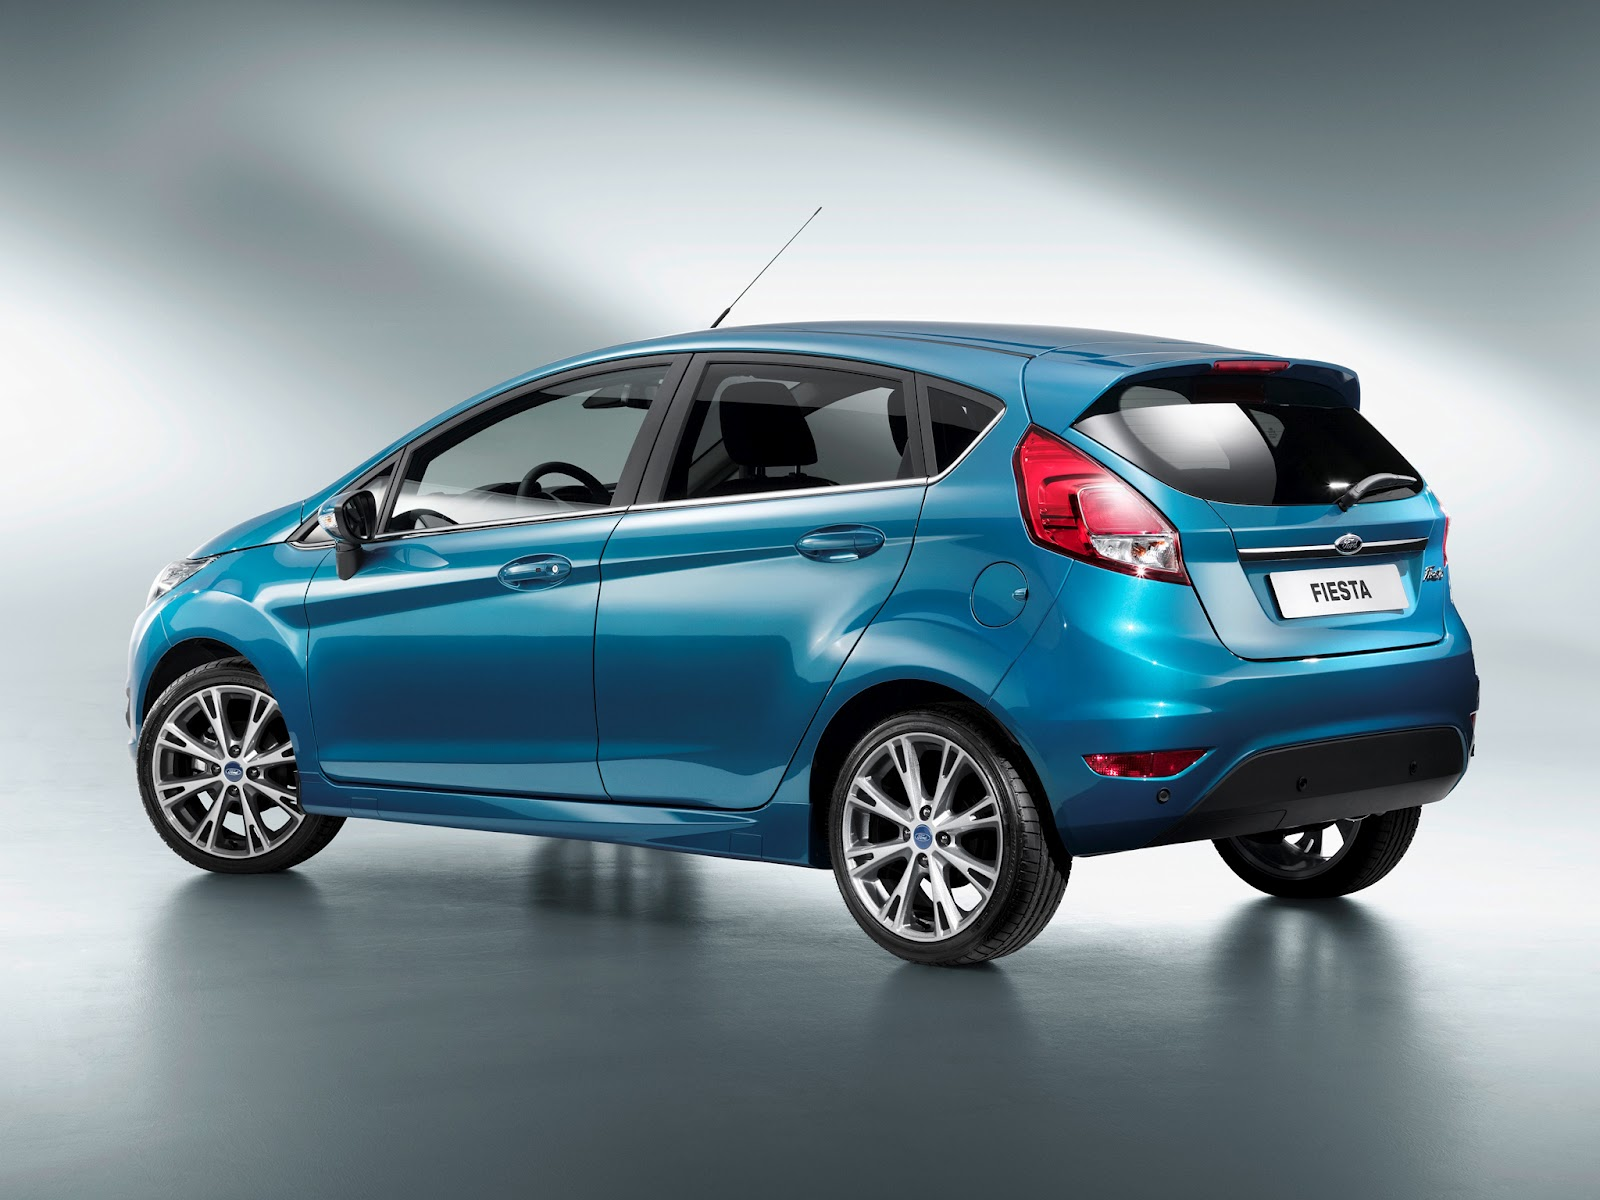 Ford_Fiesta_Facelift_3